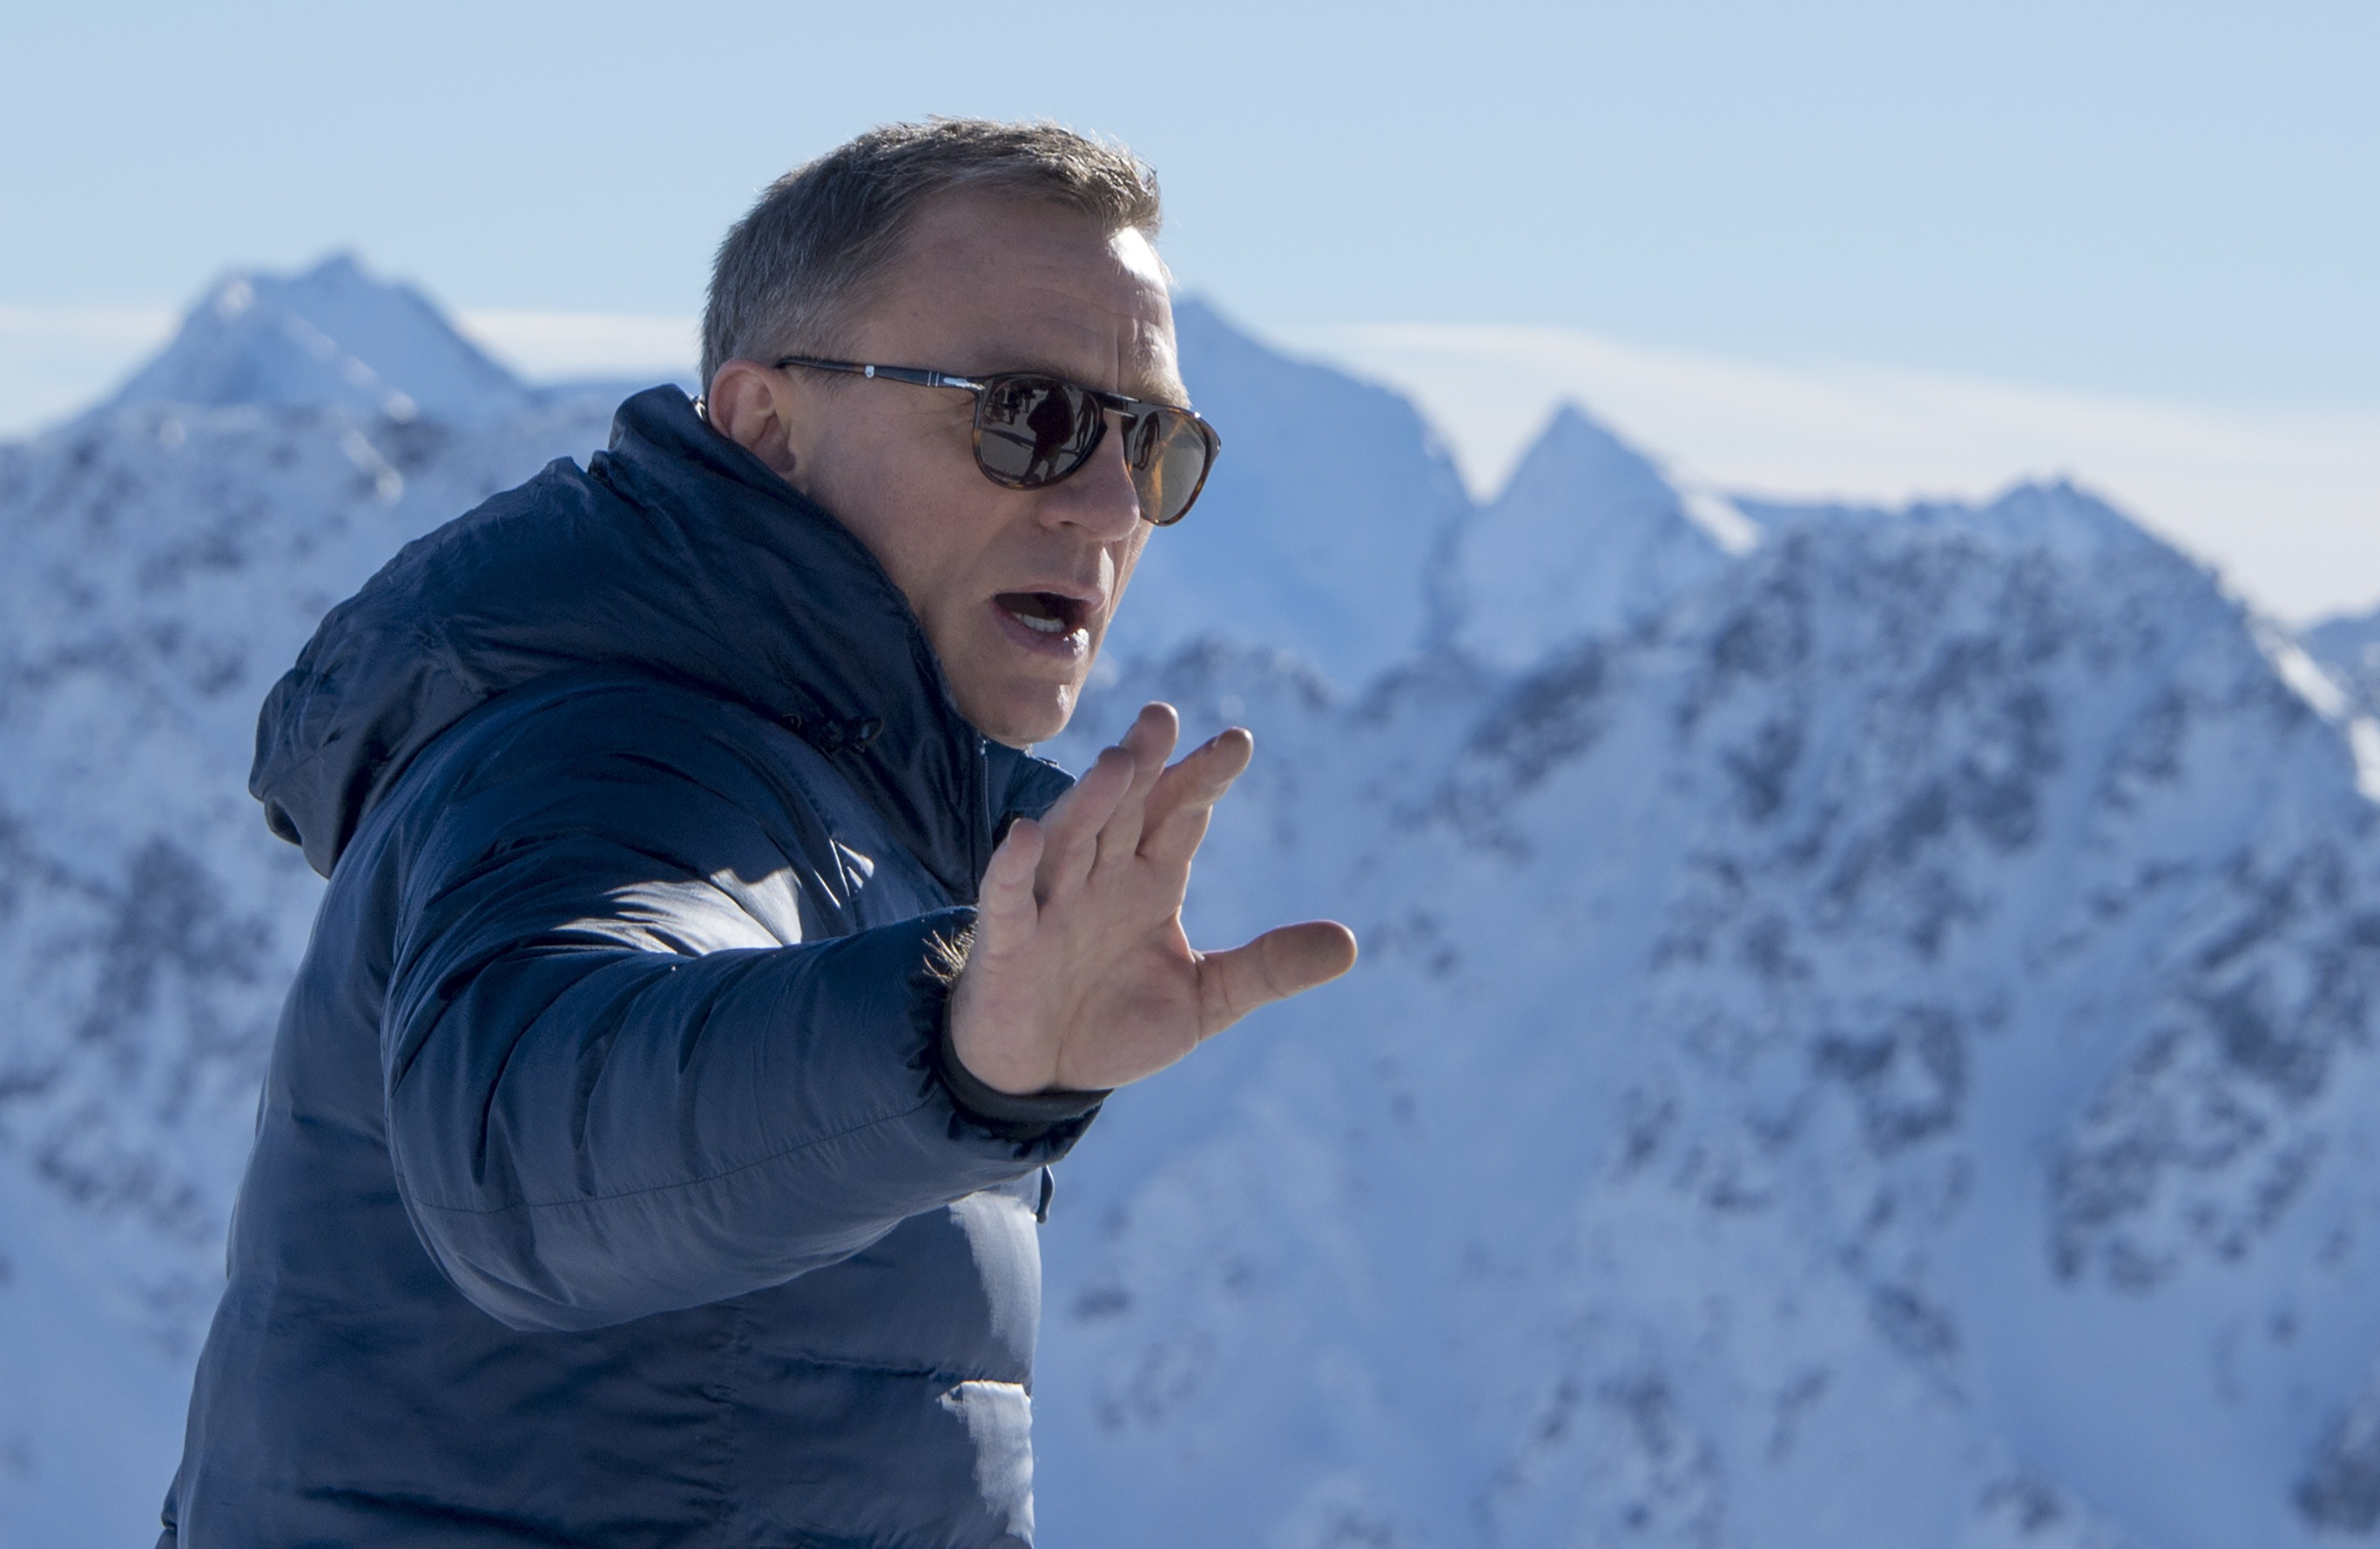 b556f421b7 Will Daniel Craig Star In Another James Bond Movie  His Comments Leave No  Room For Questions